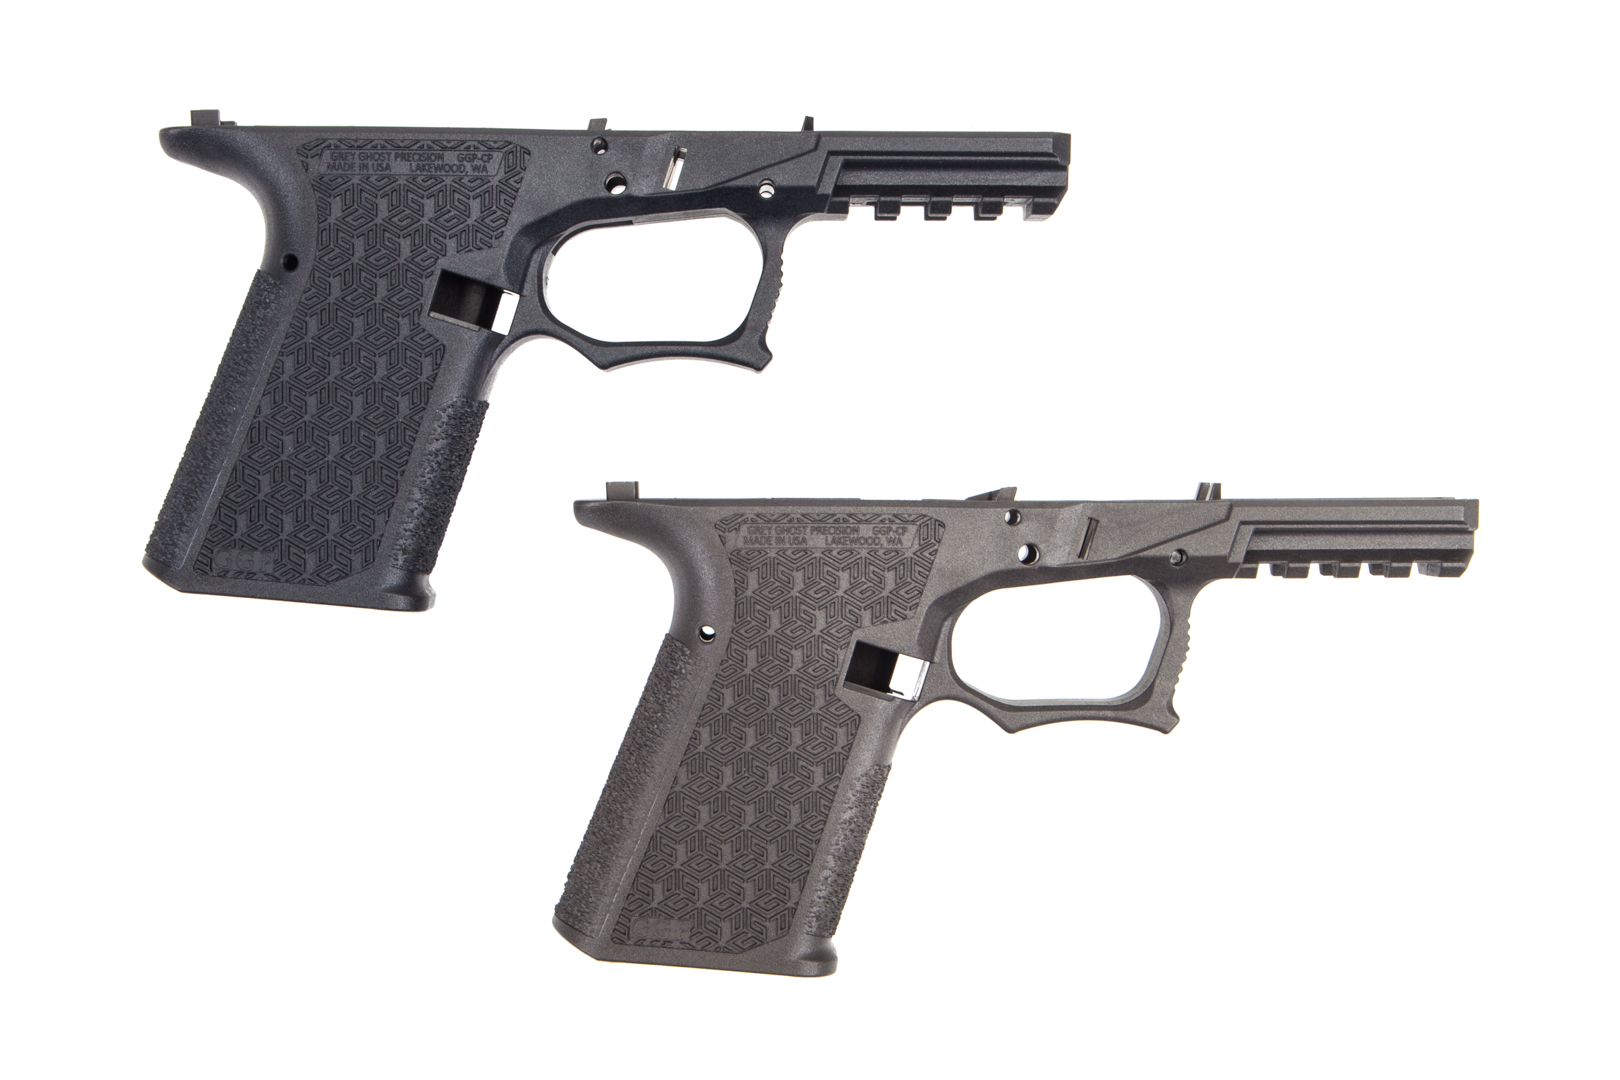 Polymer80 PFC9 Serialized Glock 19/23 Pistol Compact Frame - 80